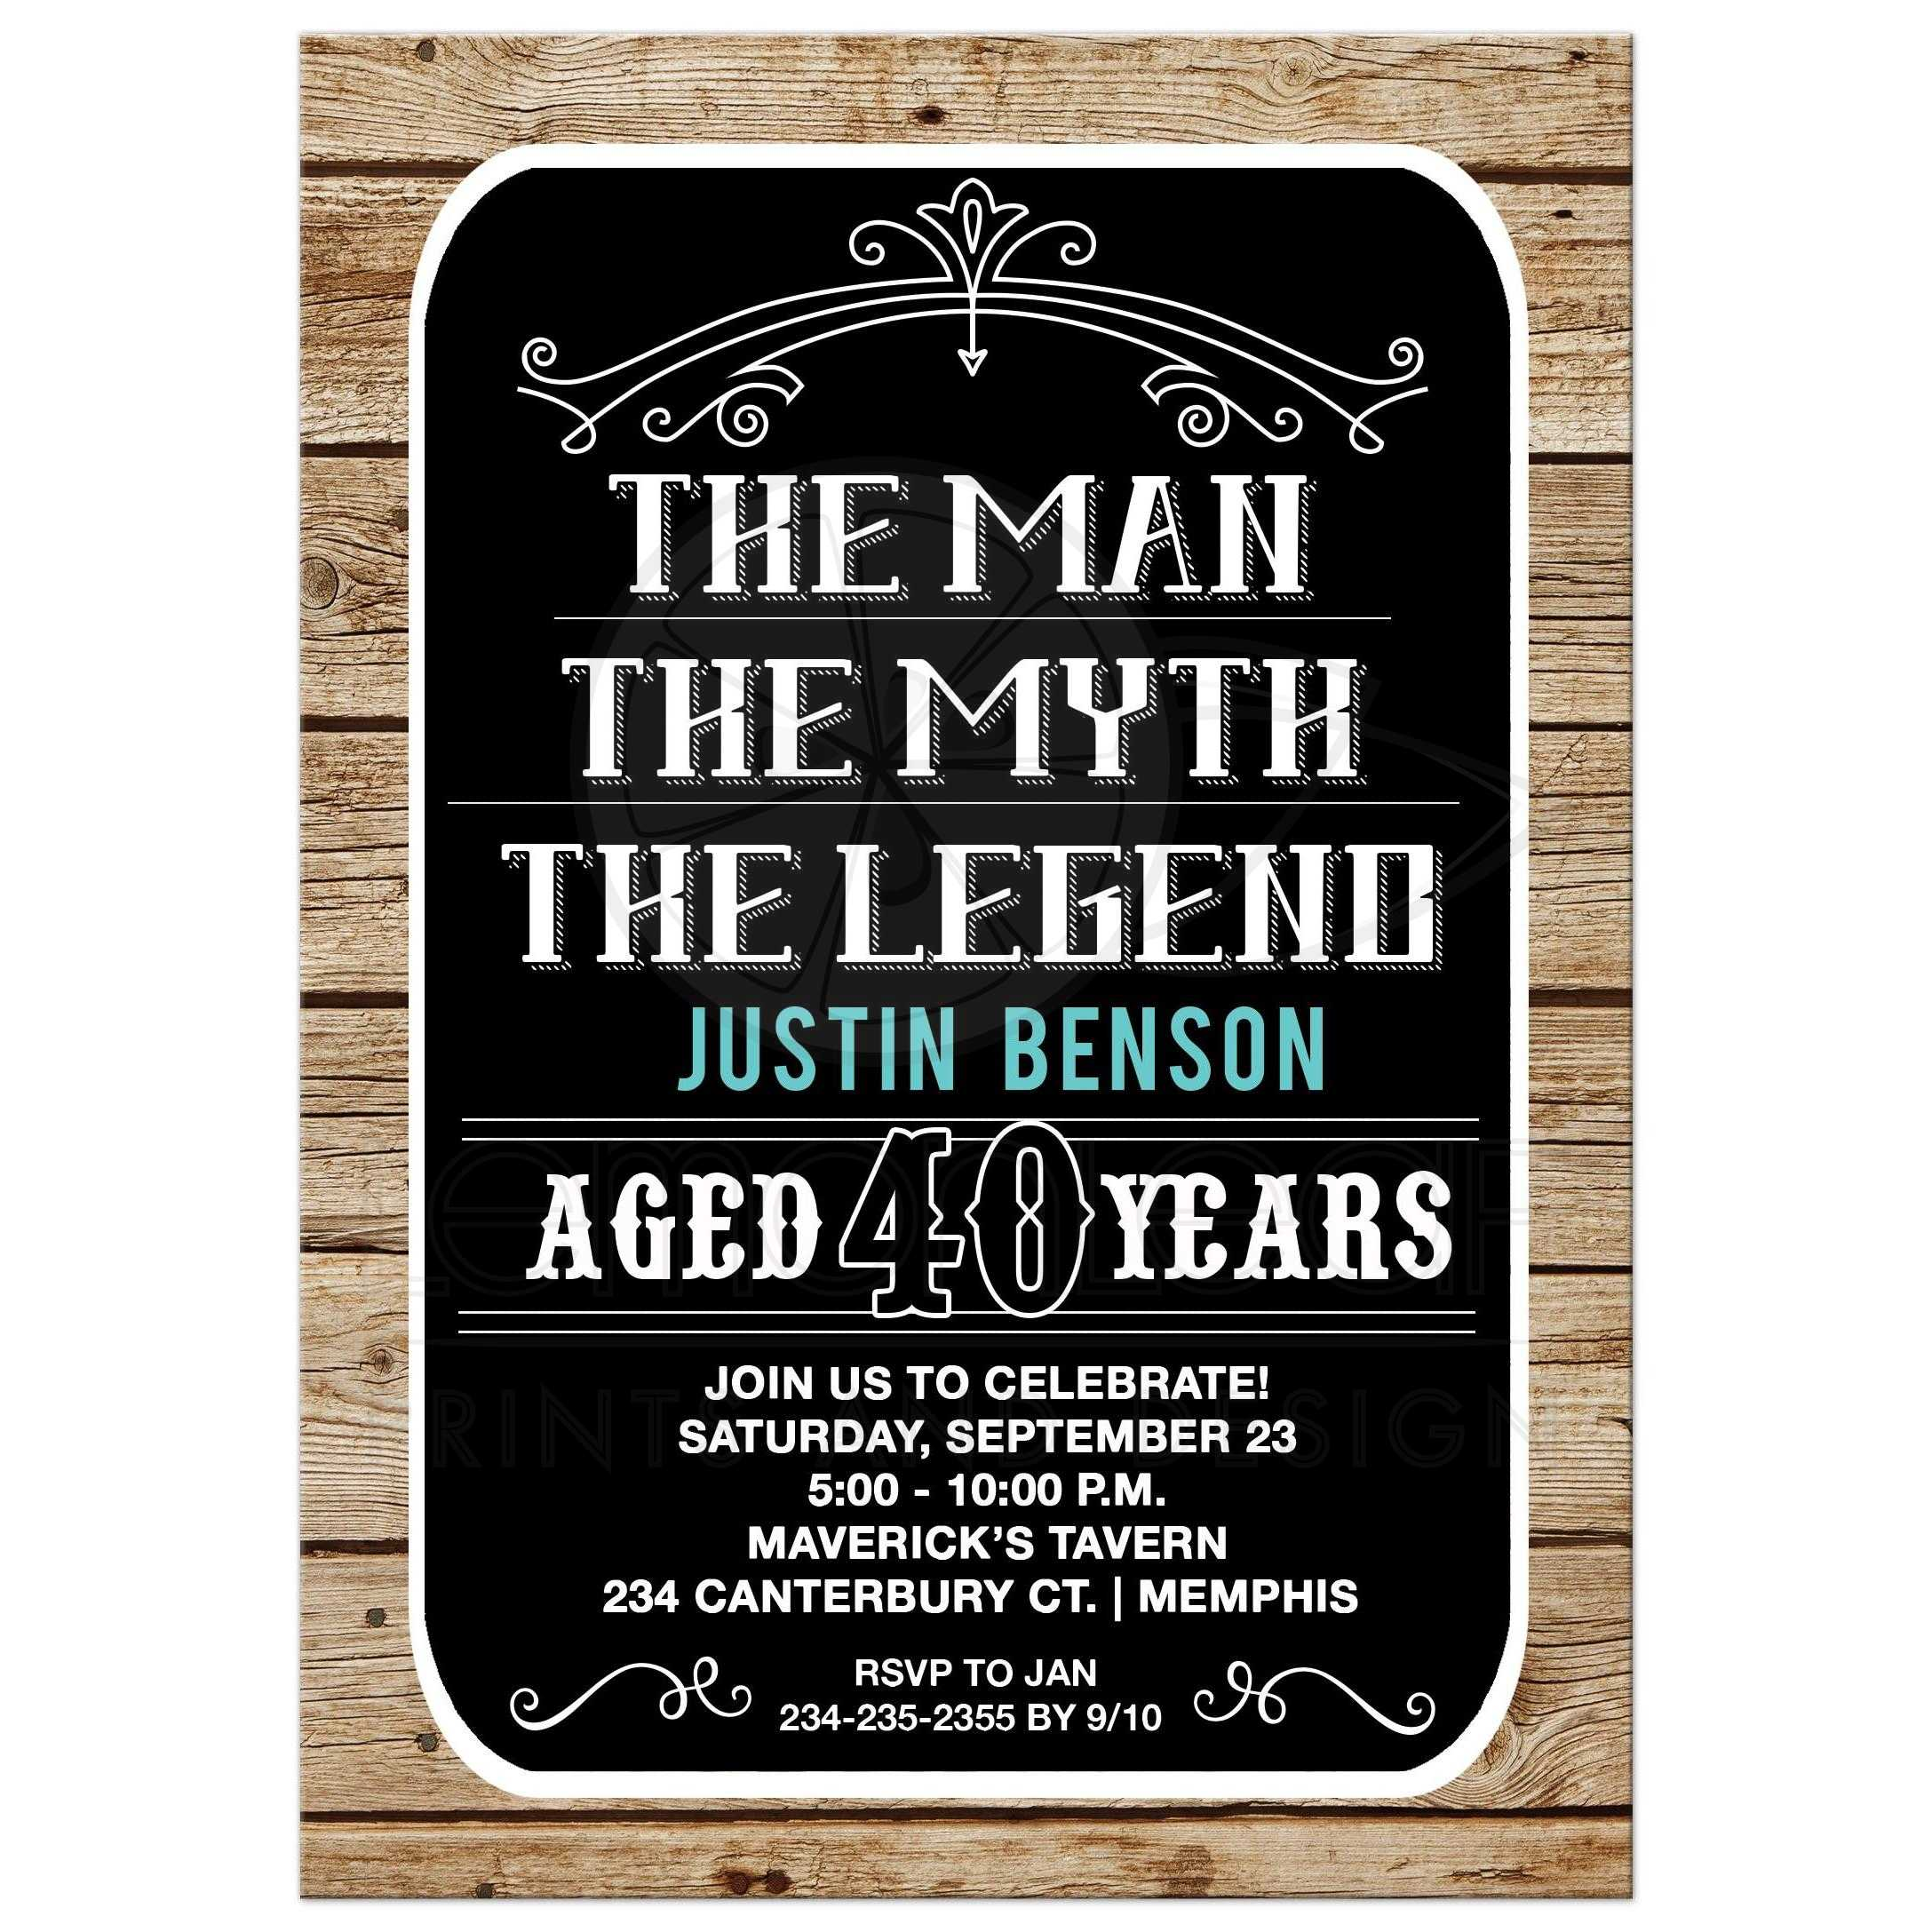 Man Birthday Invite Please Note That ALL Designs On Lemon Leaf Prints Are Flat Printed All Embellishments Of Ribbons Bows Flowers Glitter